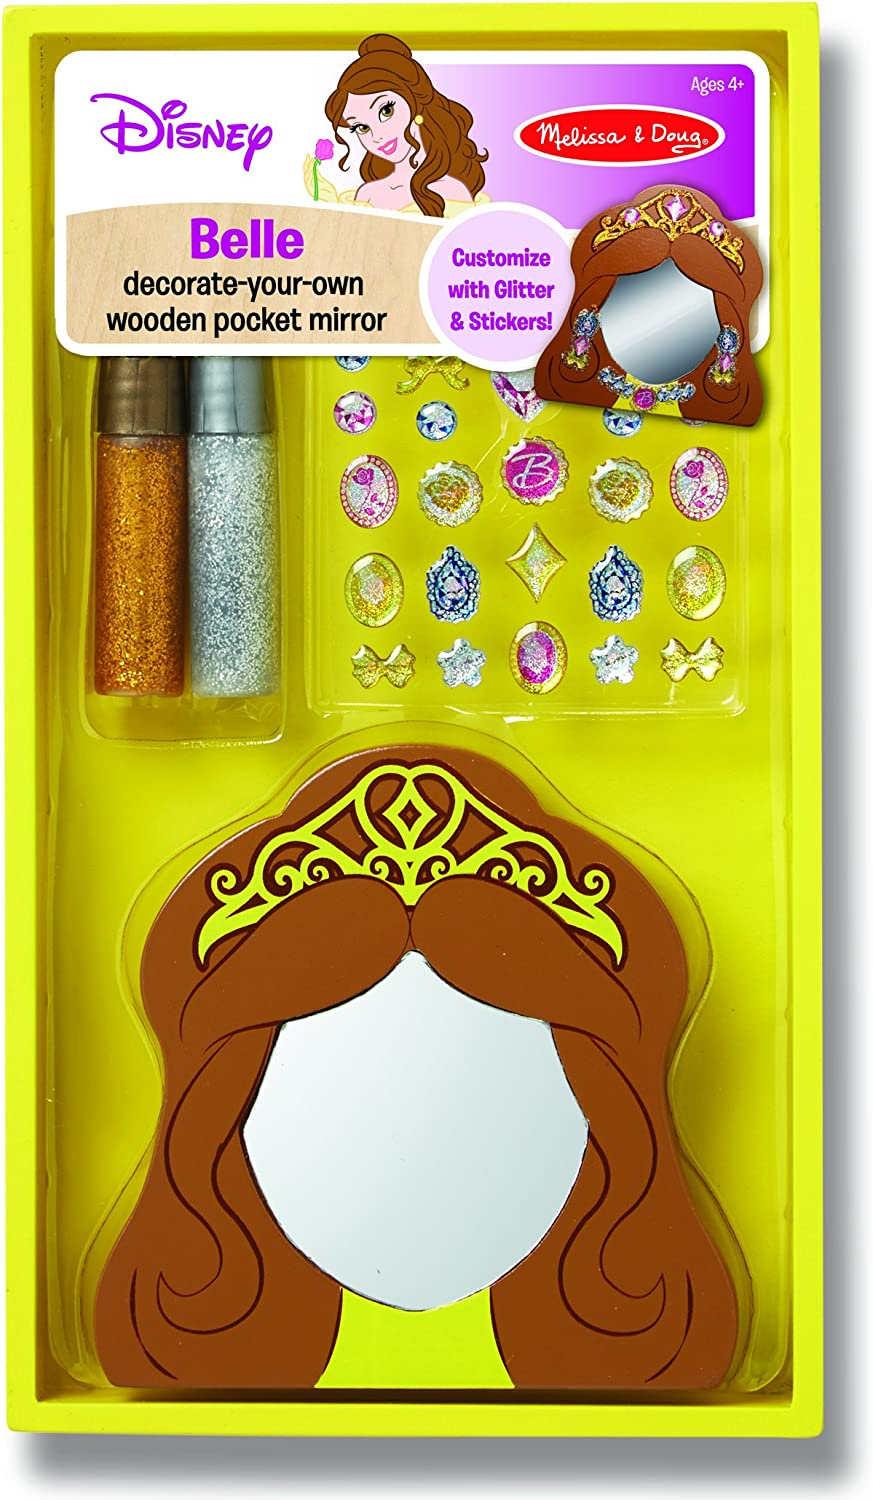 Melissa & Doug Disney Belle Decorate-Your-Own Wooden Pocket Mirror